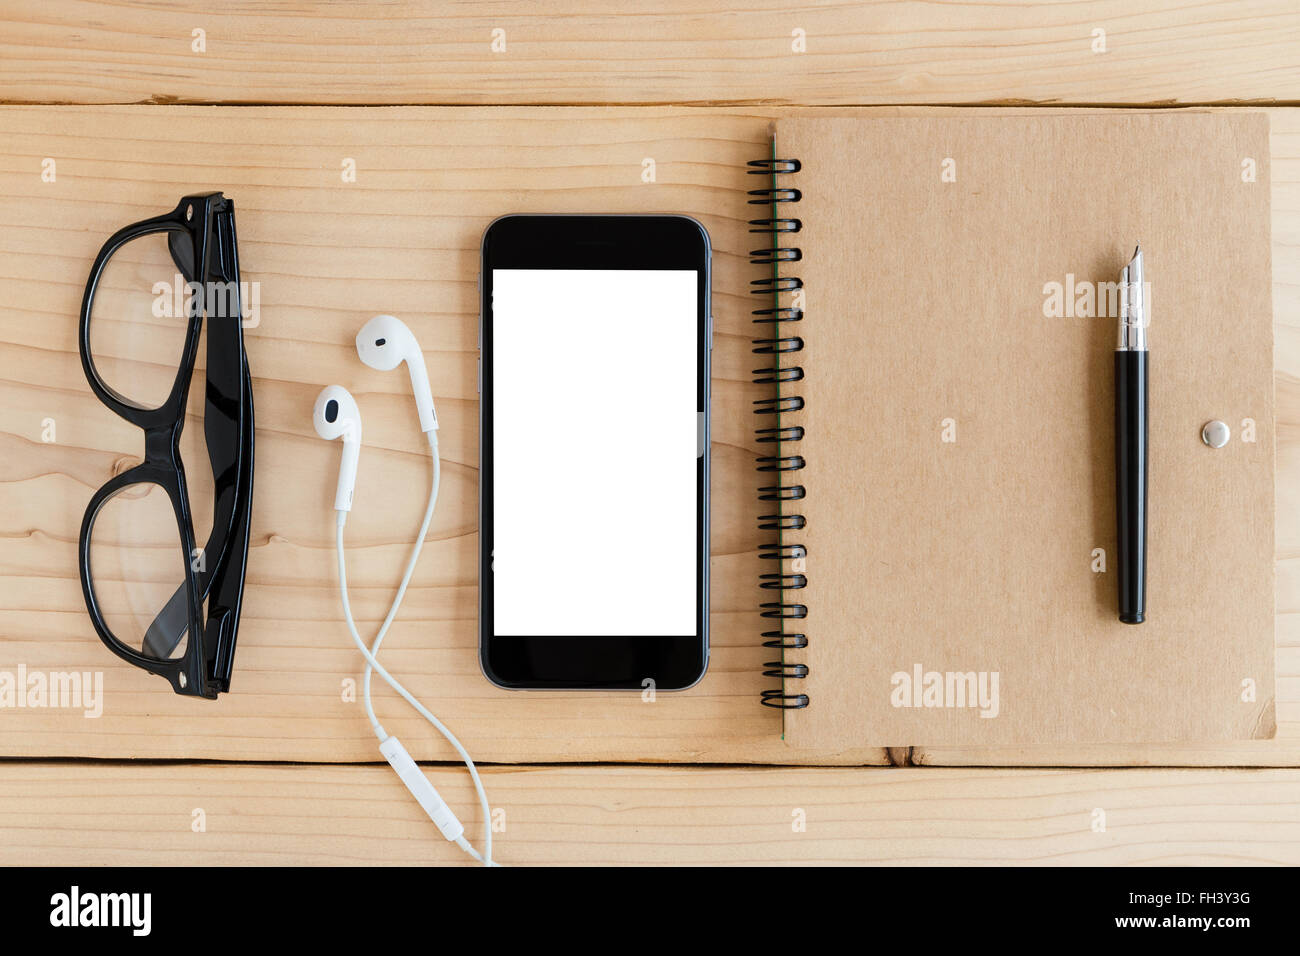 phone white screen on wood workspace top angle view - Stock Image